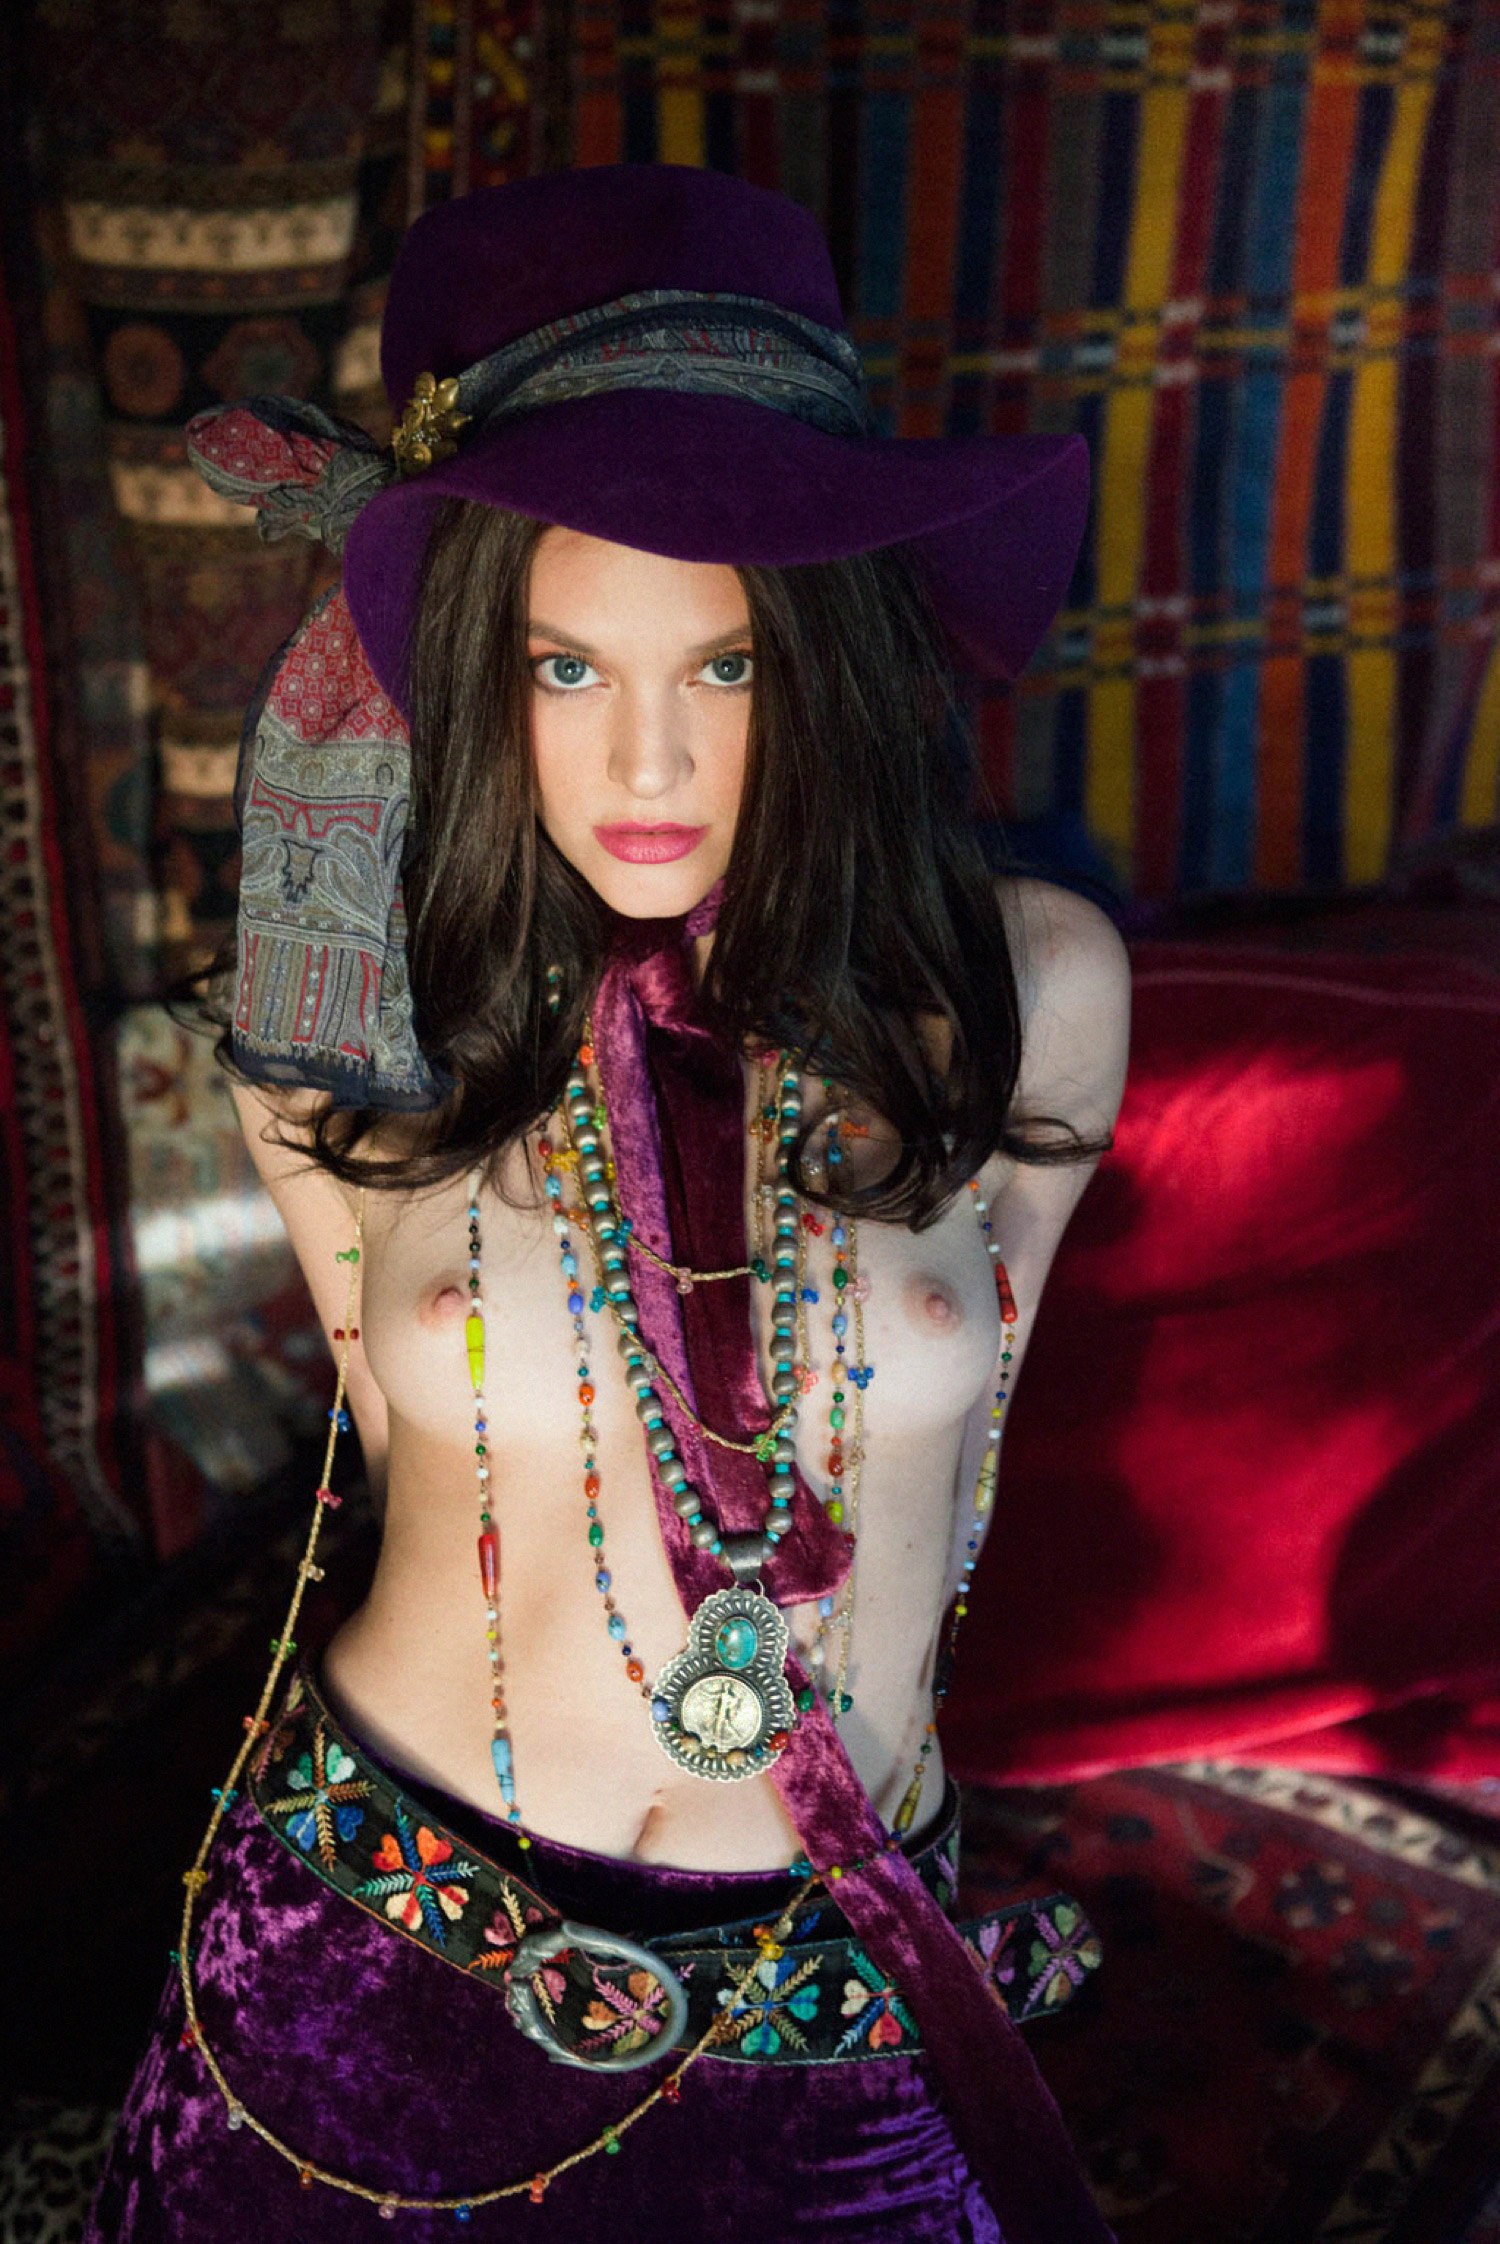 hippie bohemian fashion tips topless janice joplin style shot by photographer heather van gaale